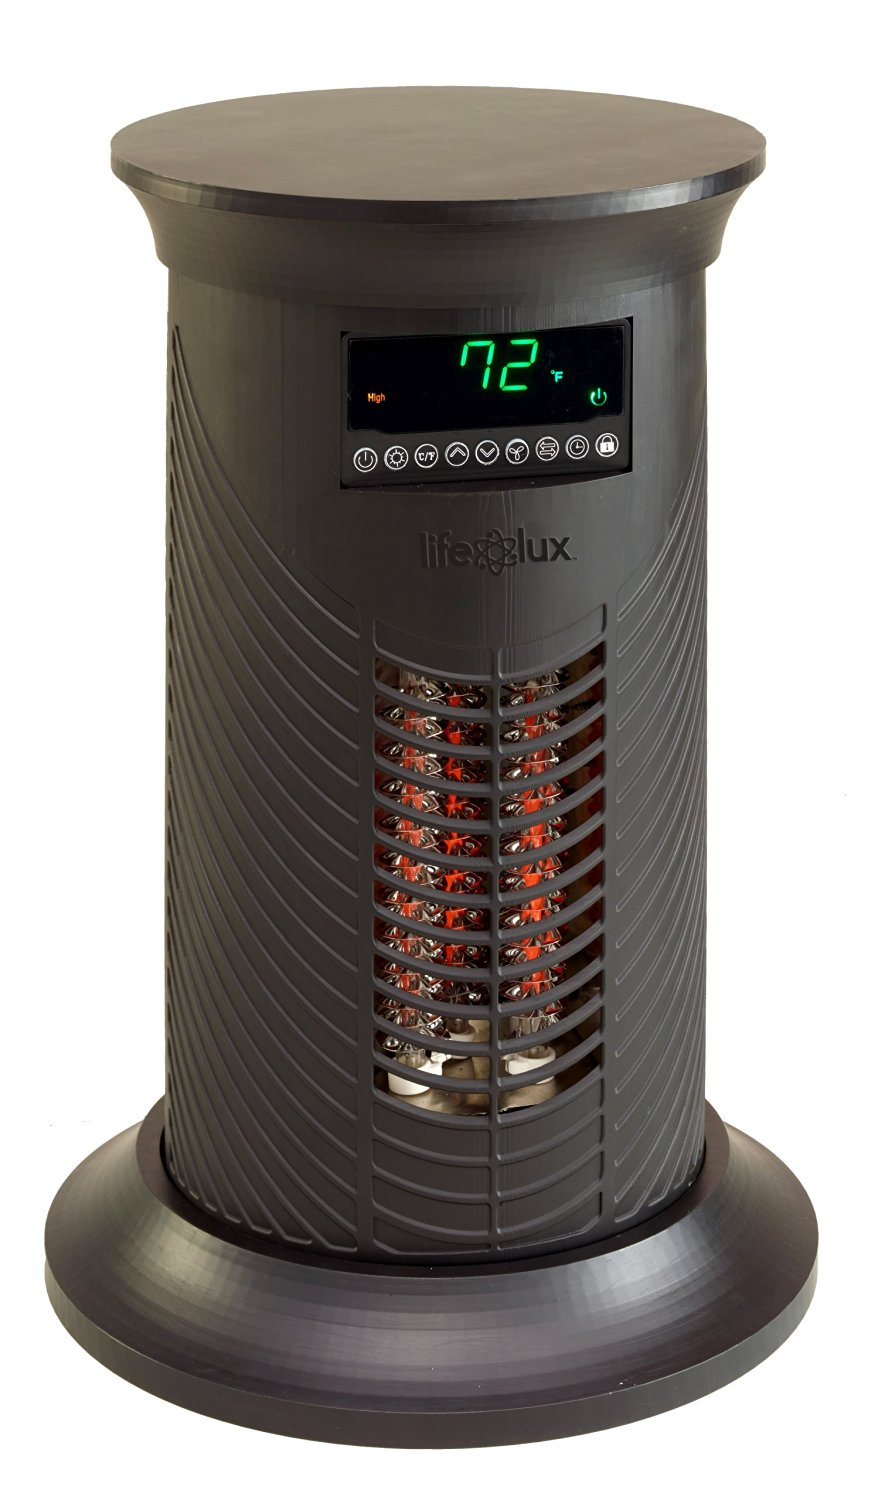 Lifesmart Lux Ls19 Iqh M Infrared Space Heater Tower